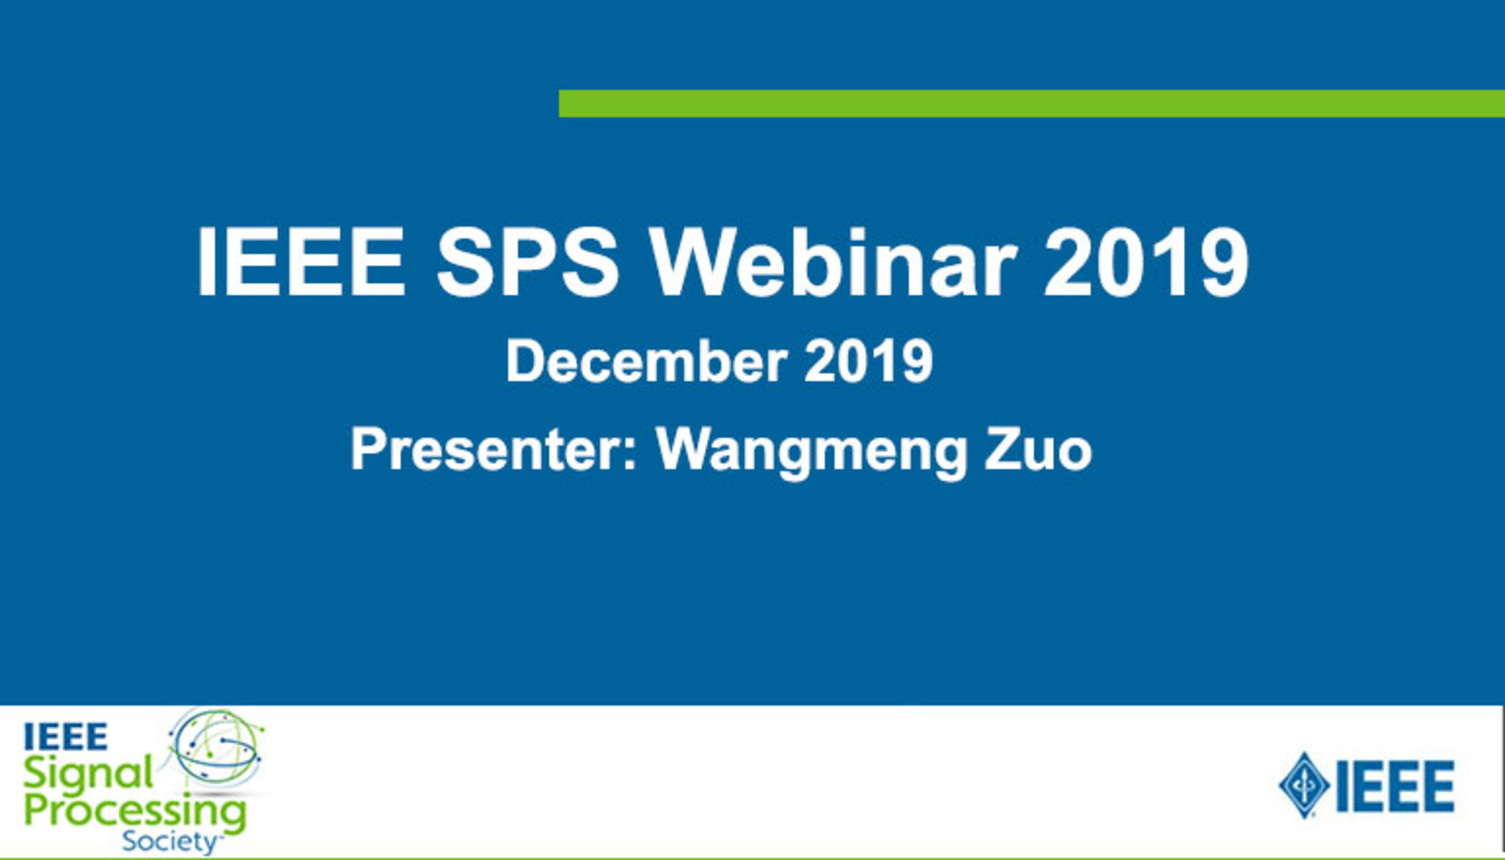 SPS Webinar: Toward Efficient and Flexible CNN-based Denoising in Photography. By Wangmeng Zuo